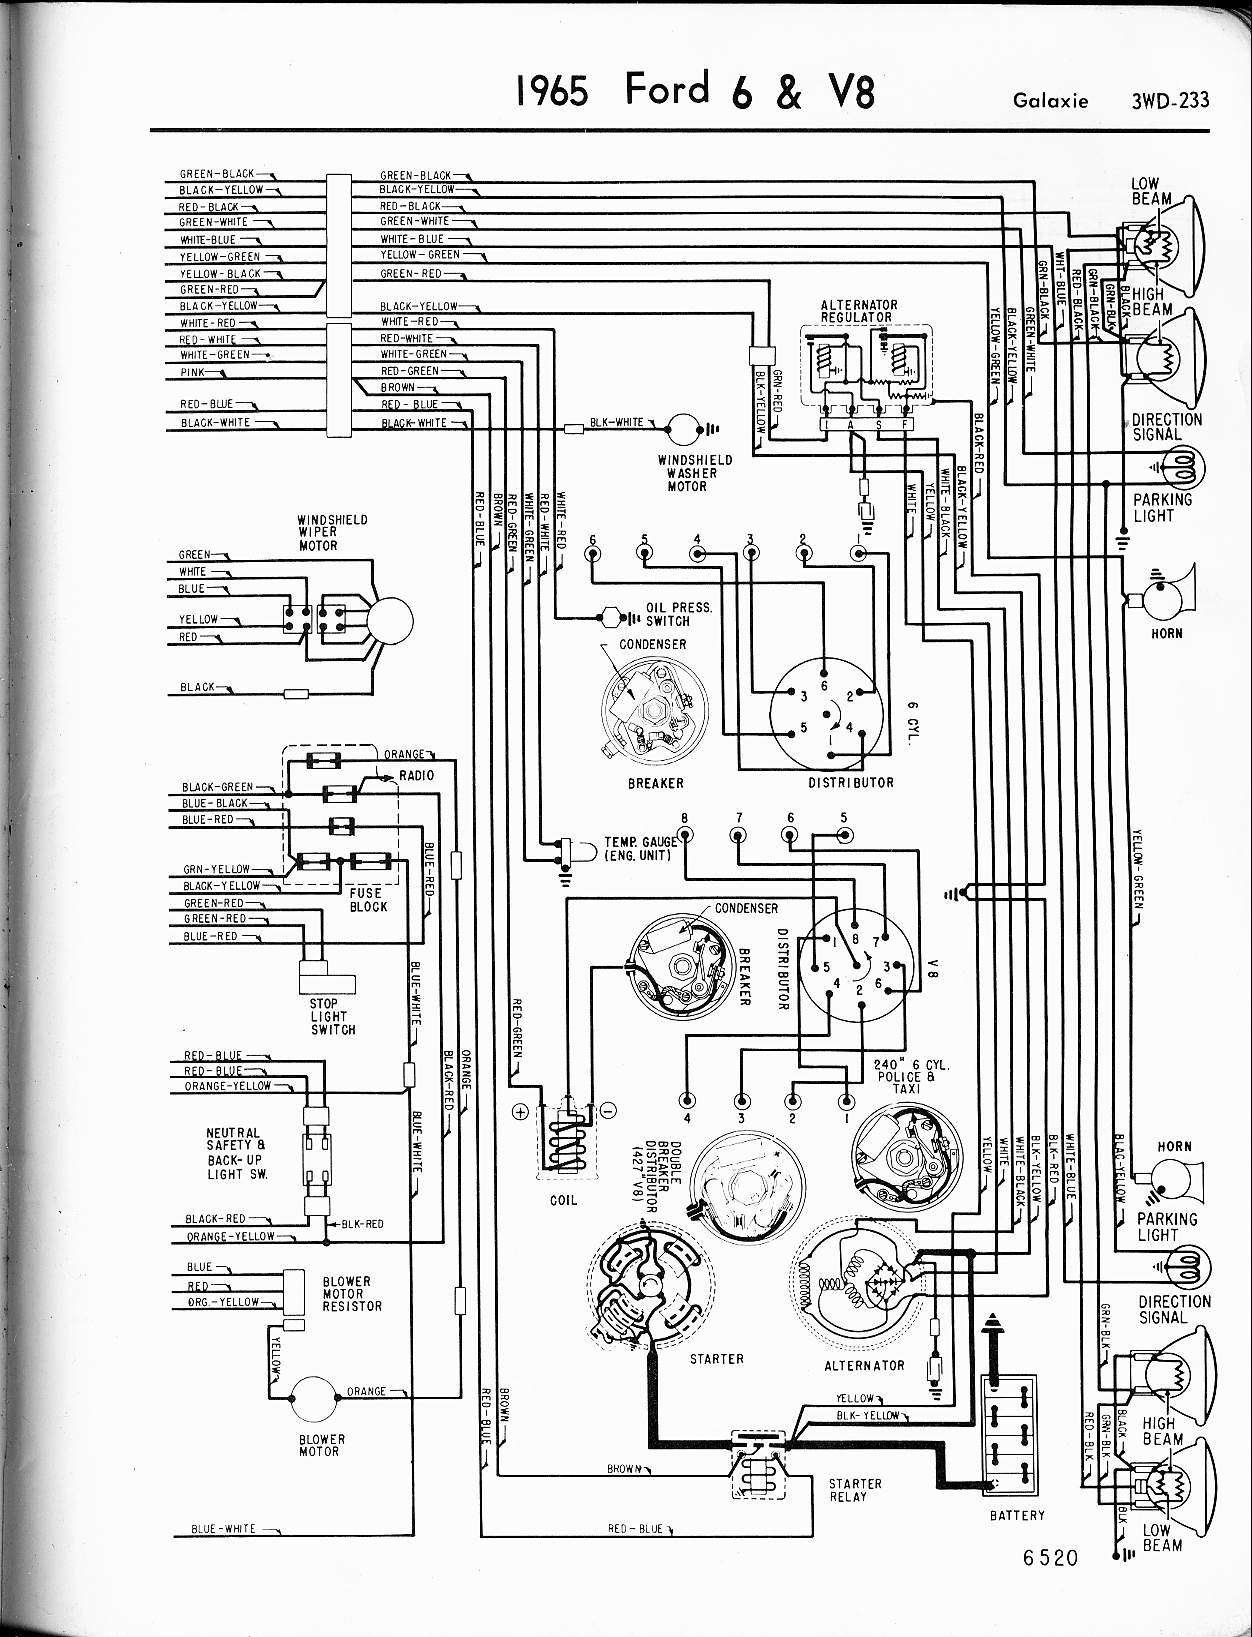 MWire5765 233 57 65 ford wiring diagrams 2005 mustang gt ignition wiring diagram at gsmx.co